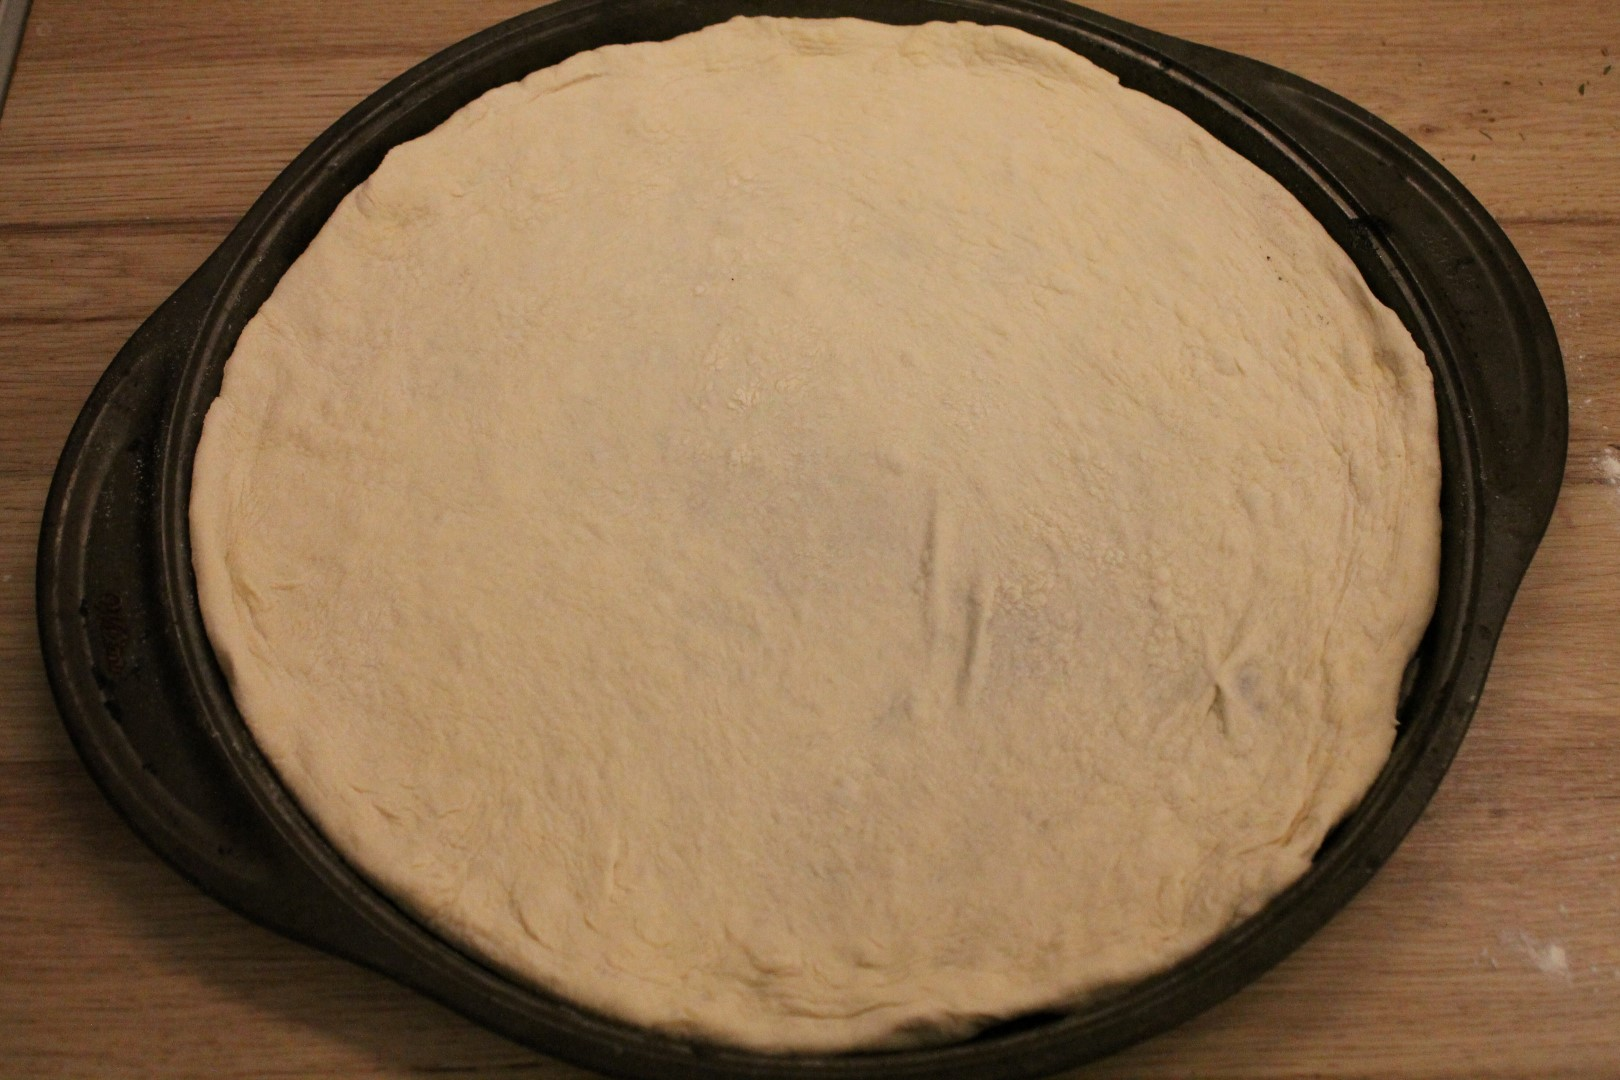 How to shape pizza dough 4